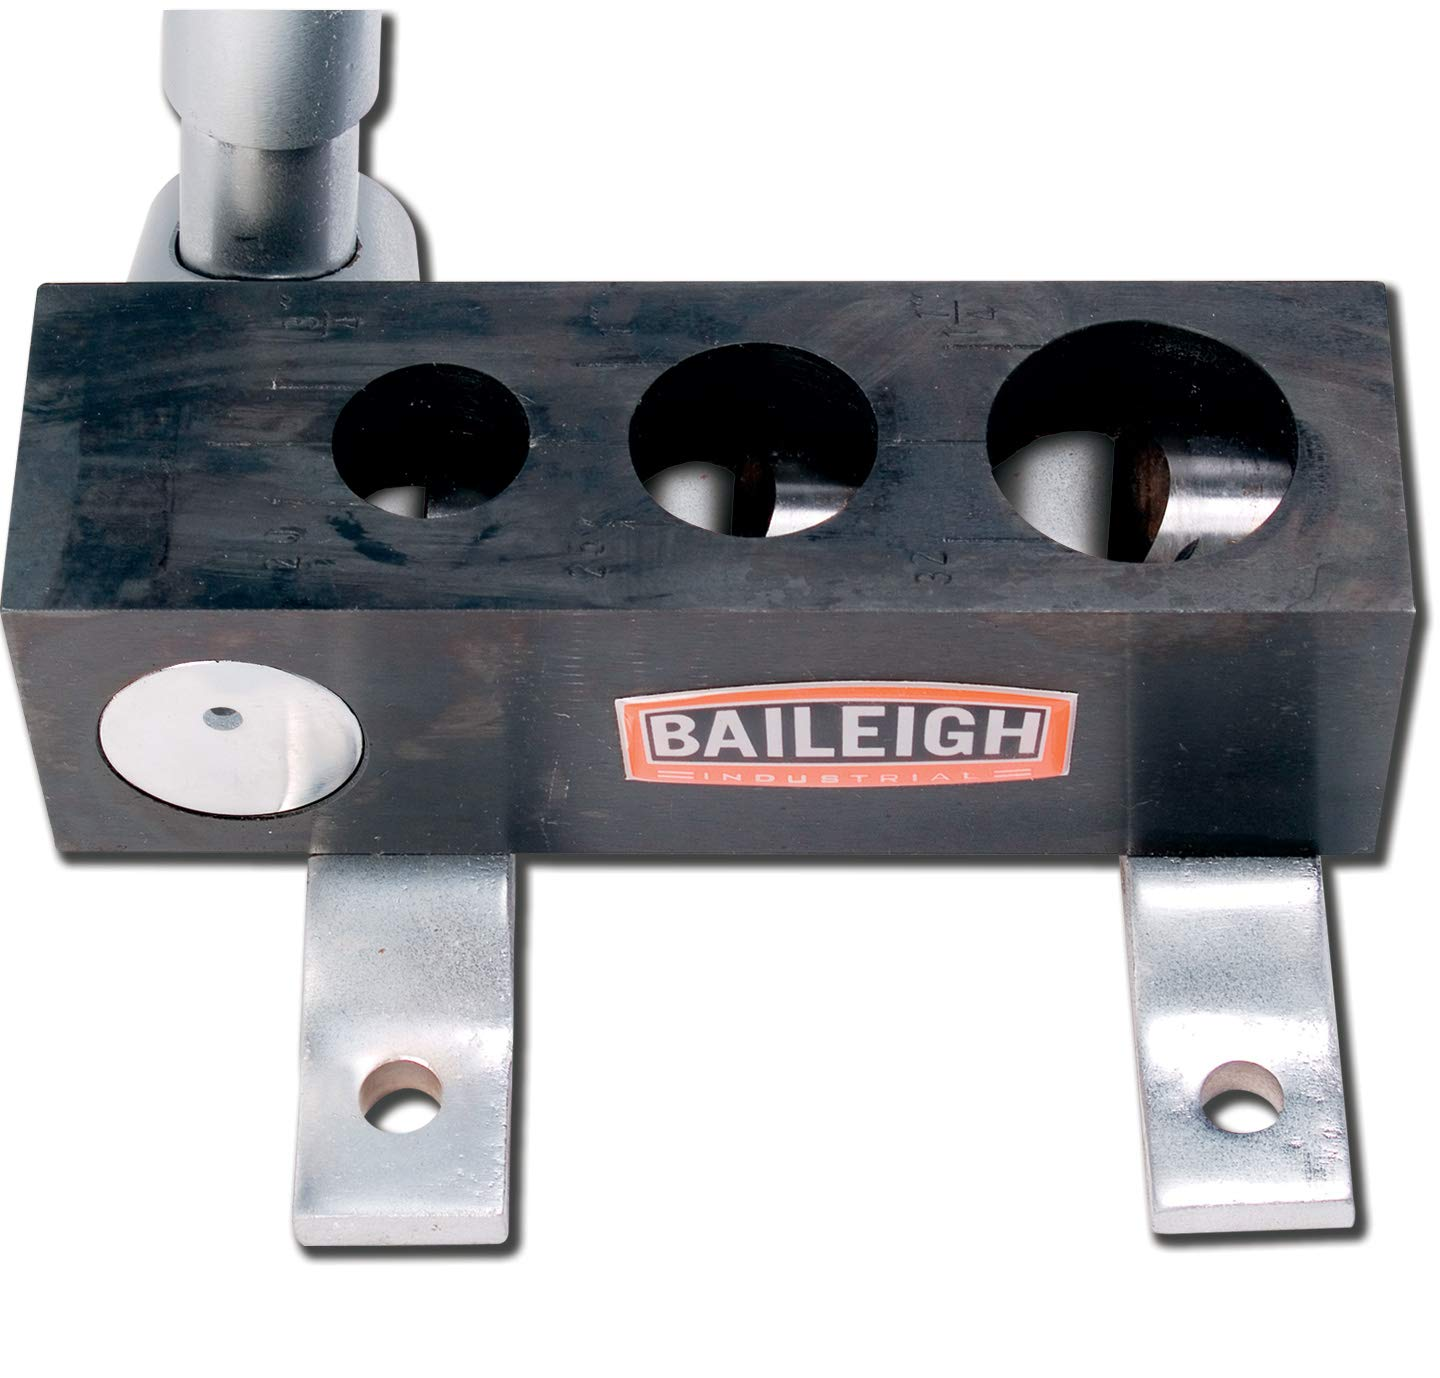 Baileigh TN-125M Manual Pipe Notcher for 3//4 and 1-1//4 Pipe